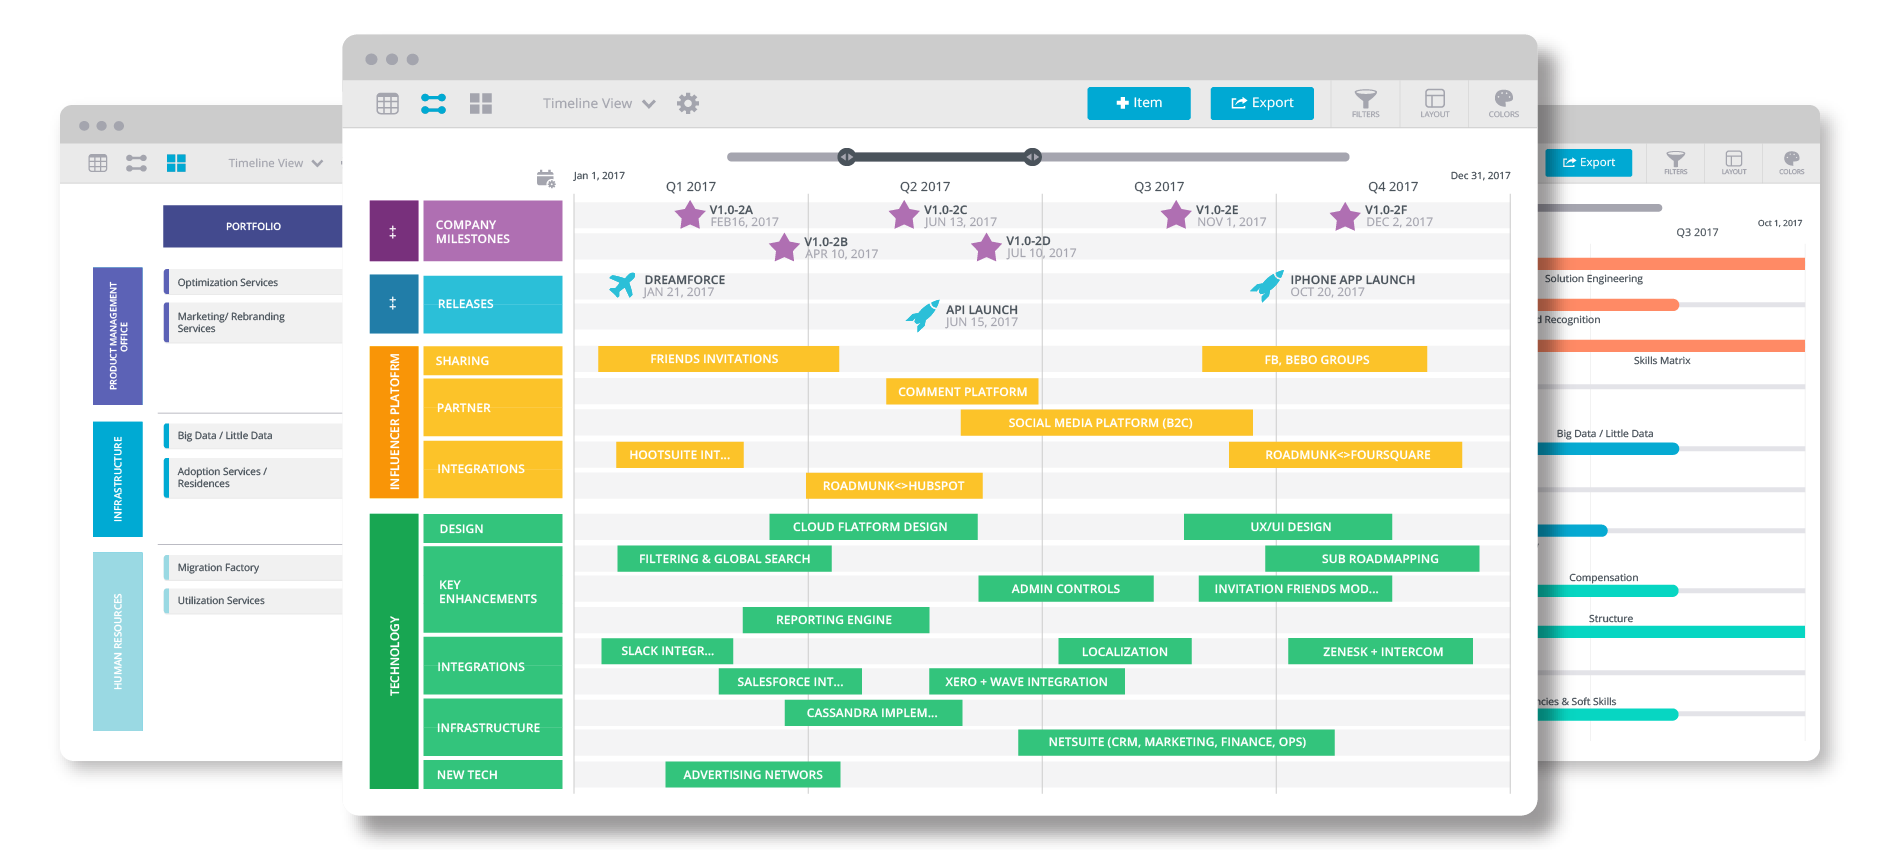 roadmunk raises seed round to help companies visualize product roadmap techvibes